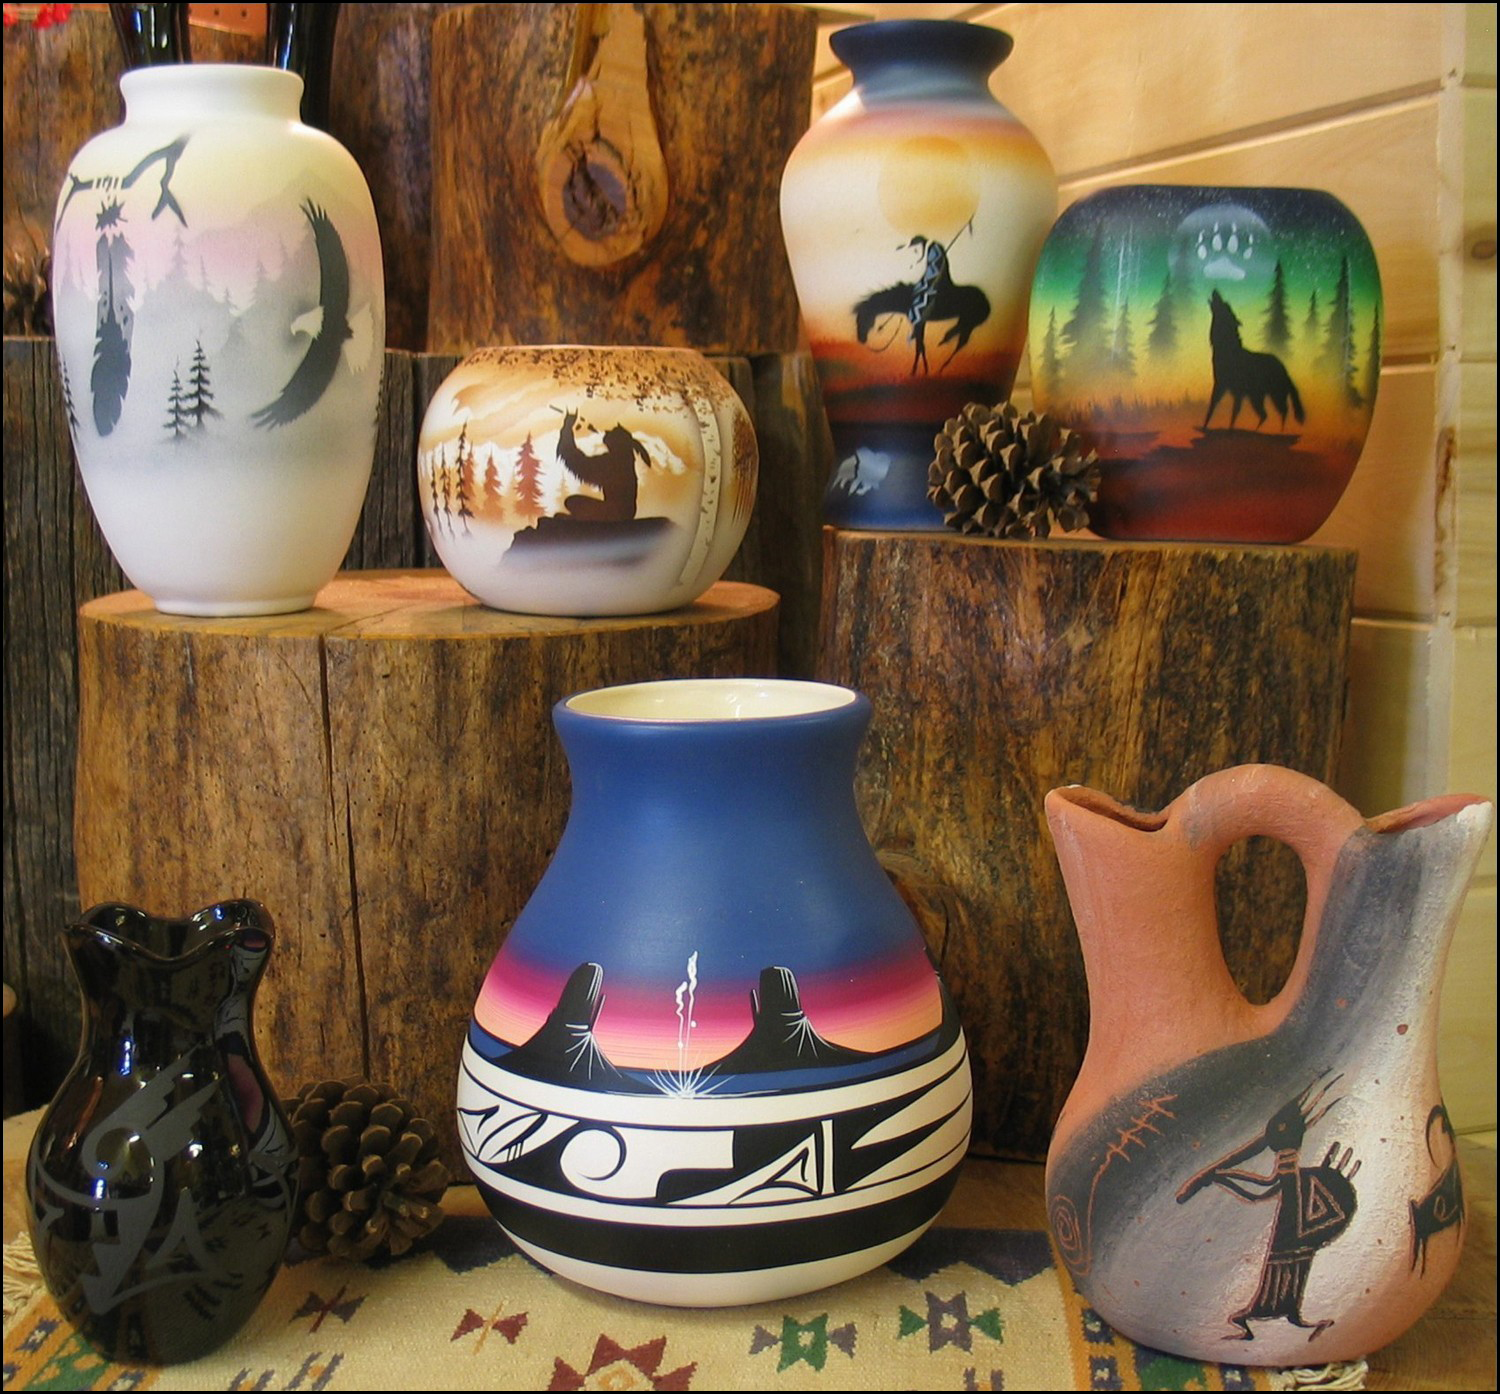 The Best San Diego Home Gift Boutiques: Native American Pottery Has Appeal Worldwide